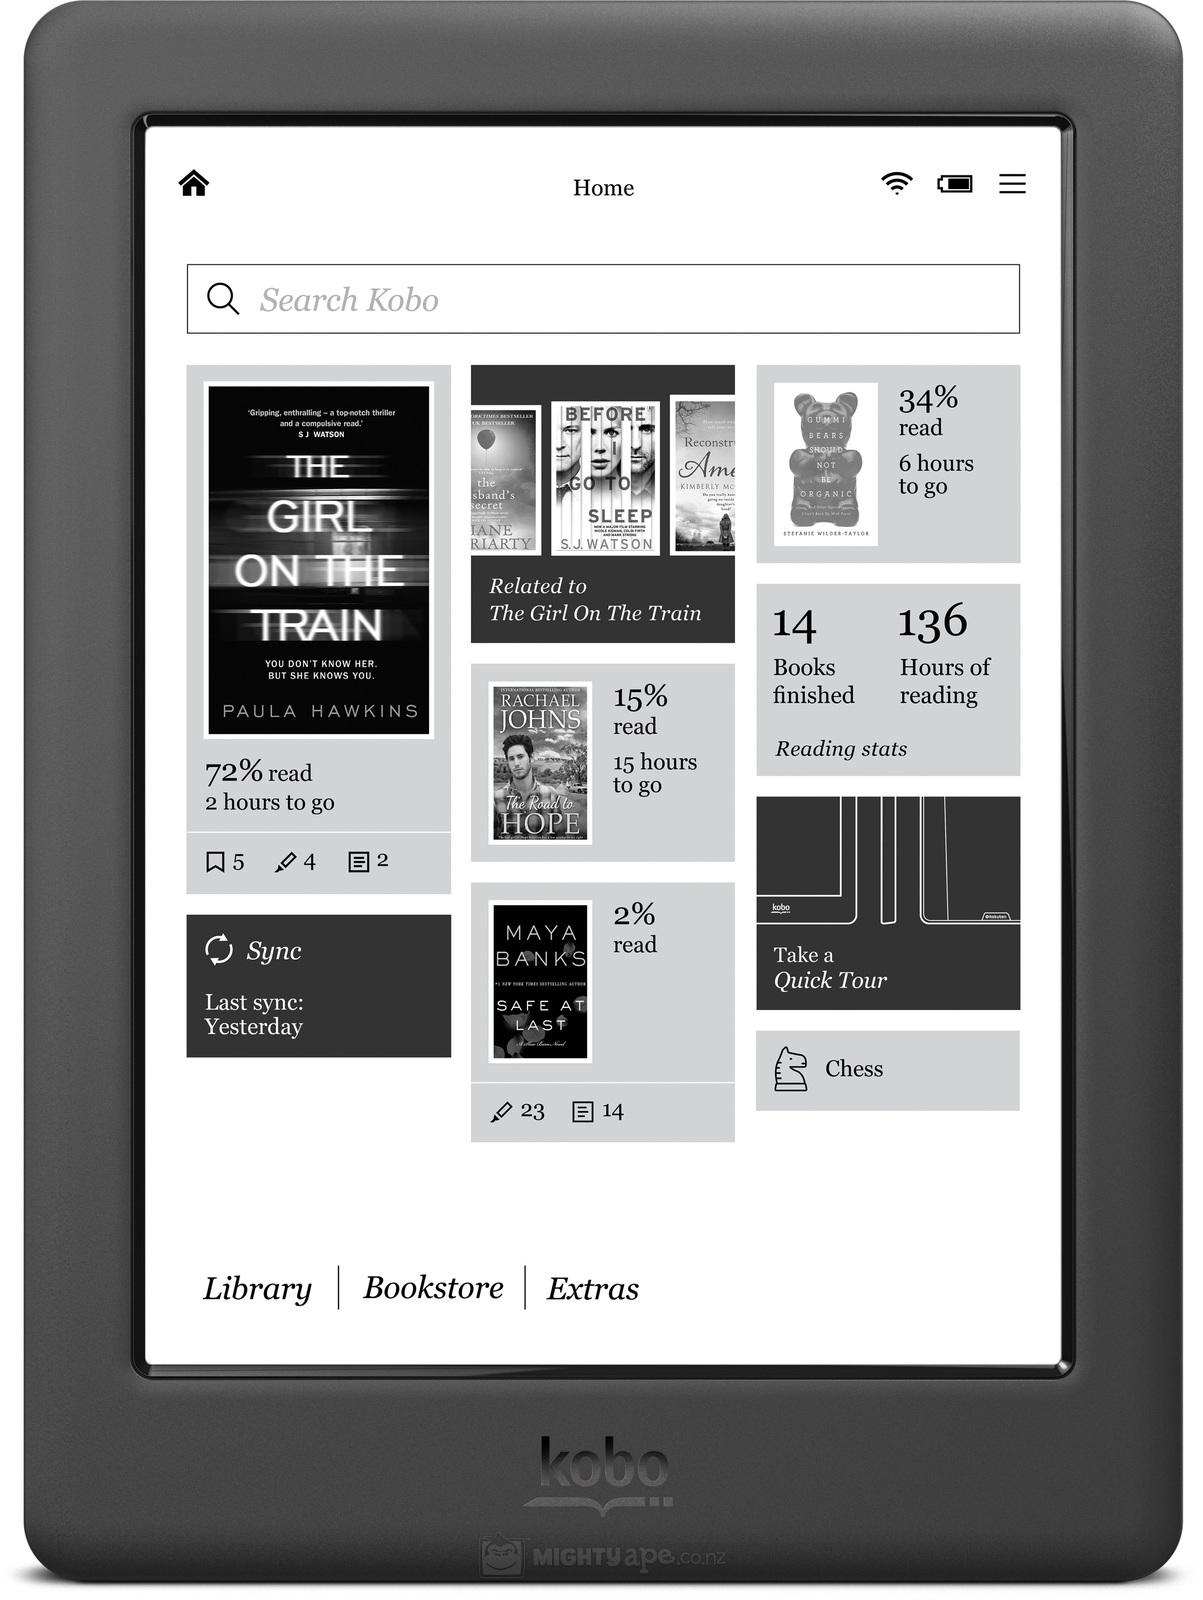 i emailed ebooks to my kindle how to delete them